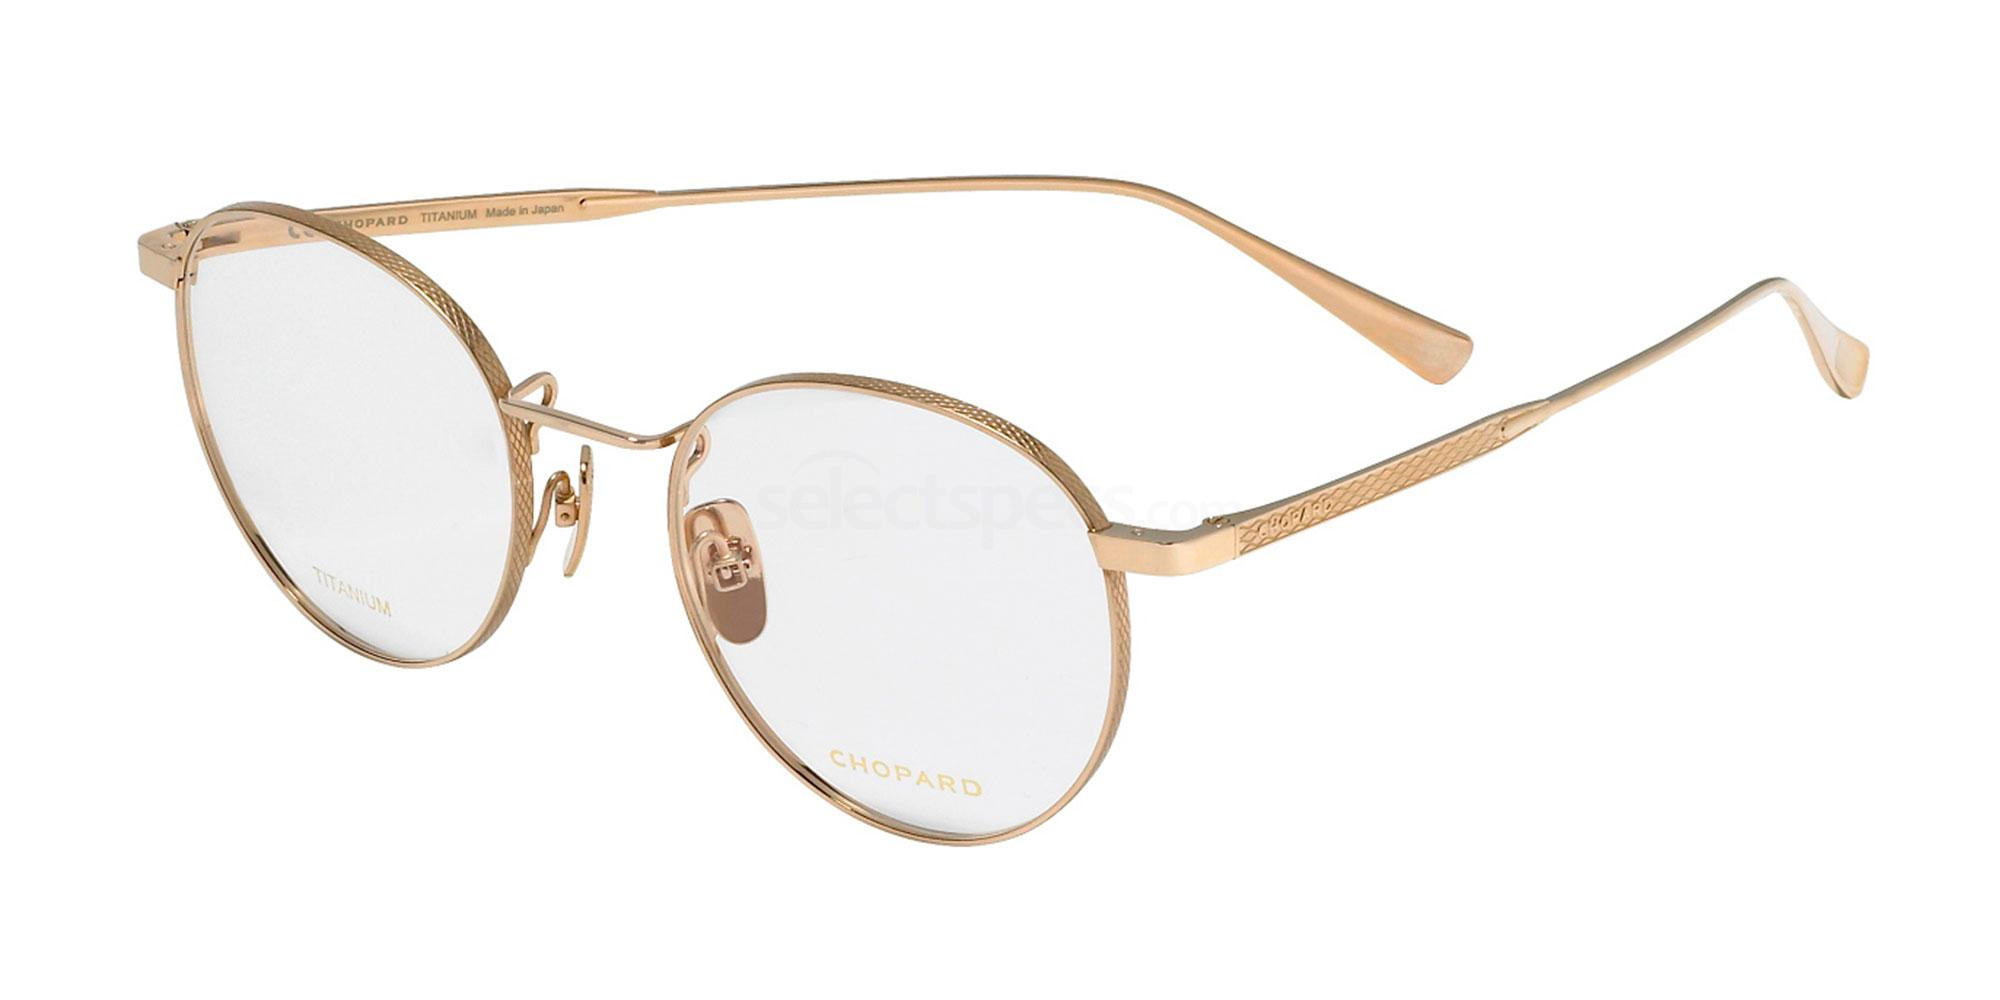 0300 VCHC77M Glasses, Chopard